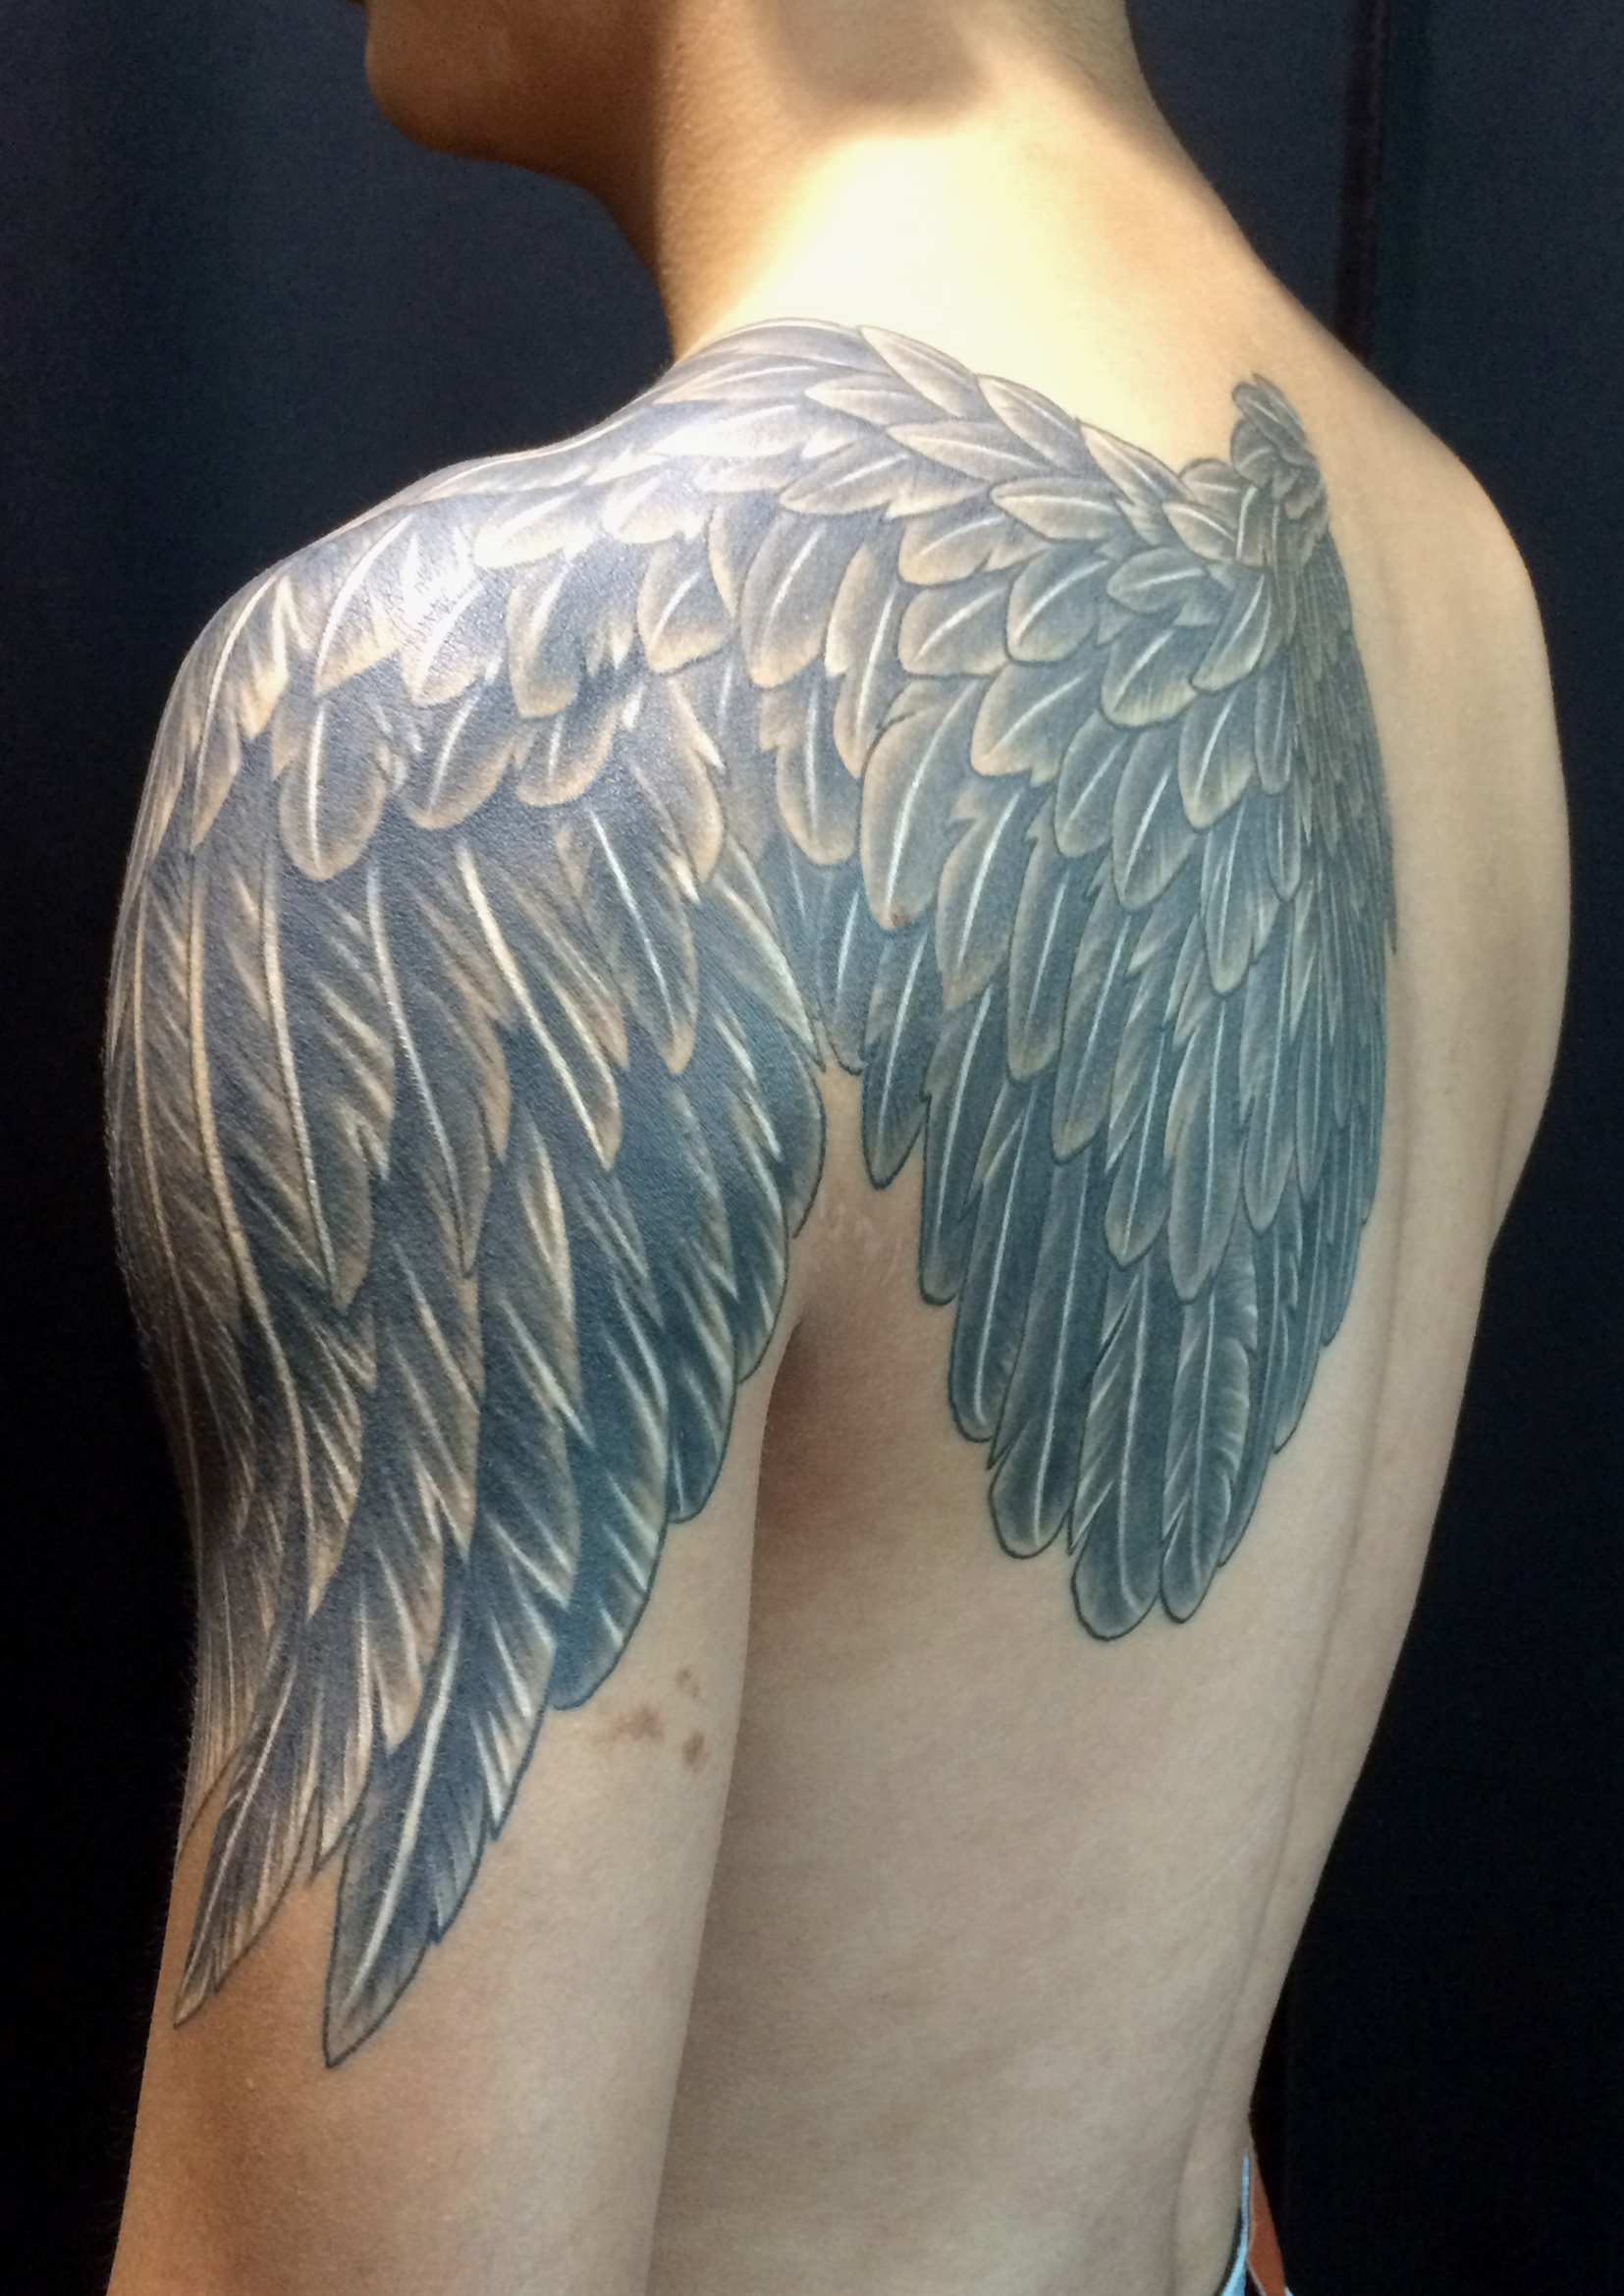 wing tattoo back to arm.jpg